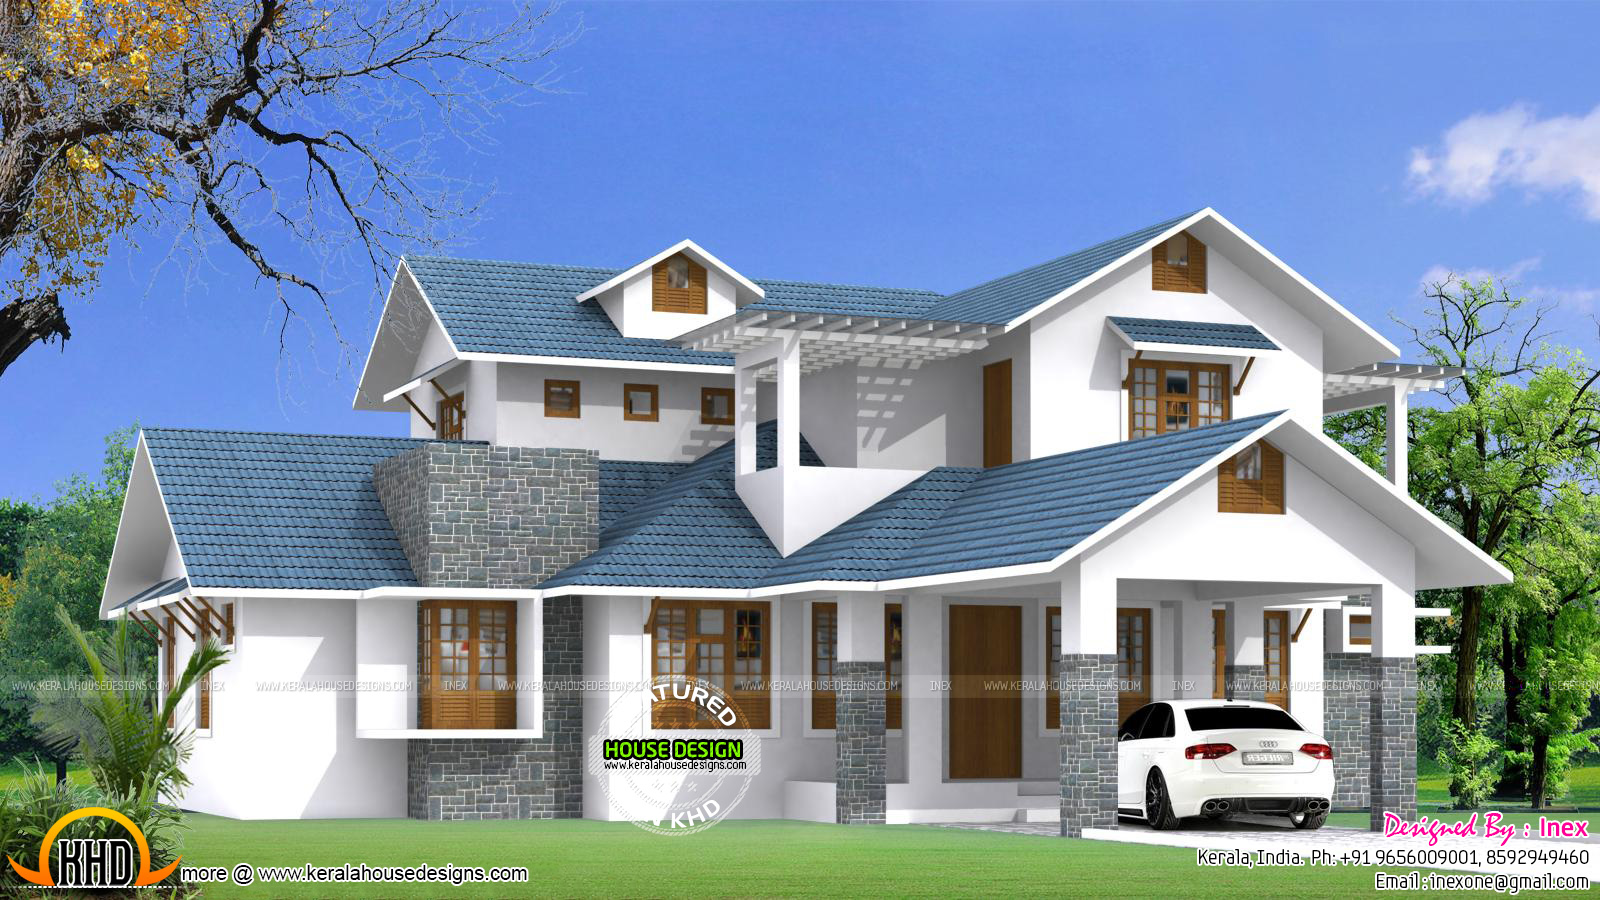 Beautiful blue roof house plan kerala home design and for Blue house builders